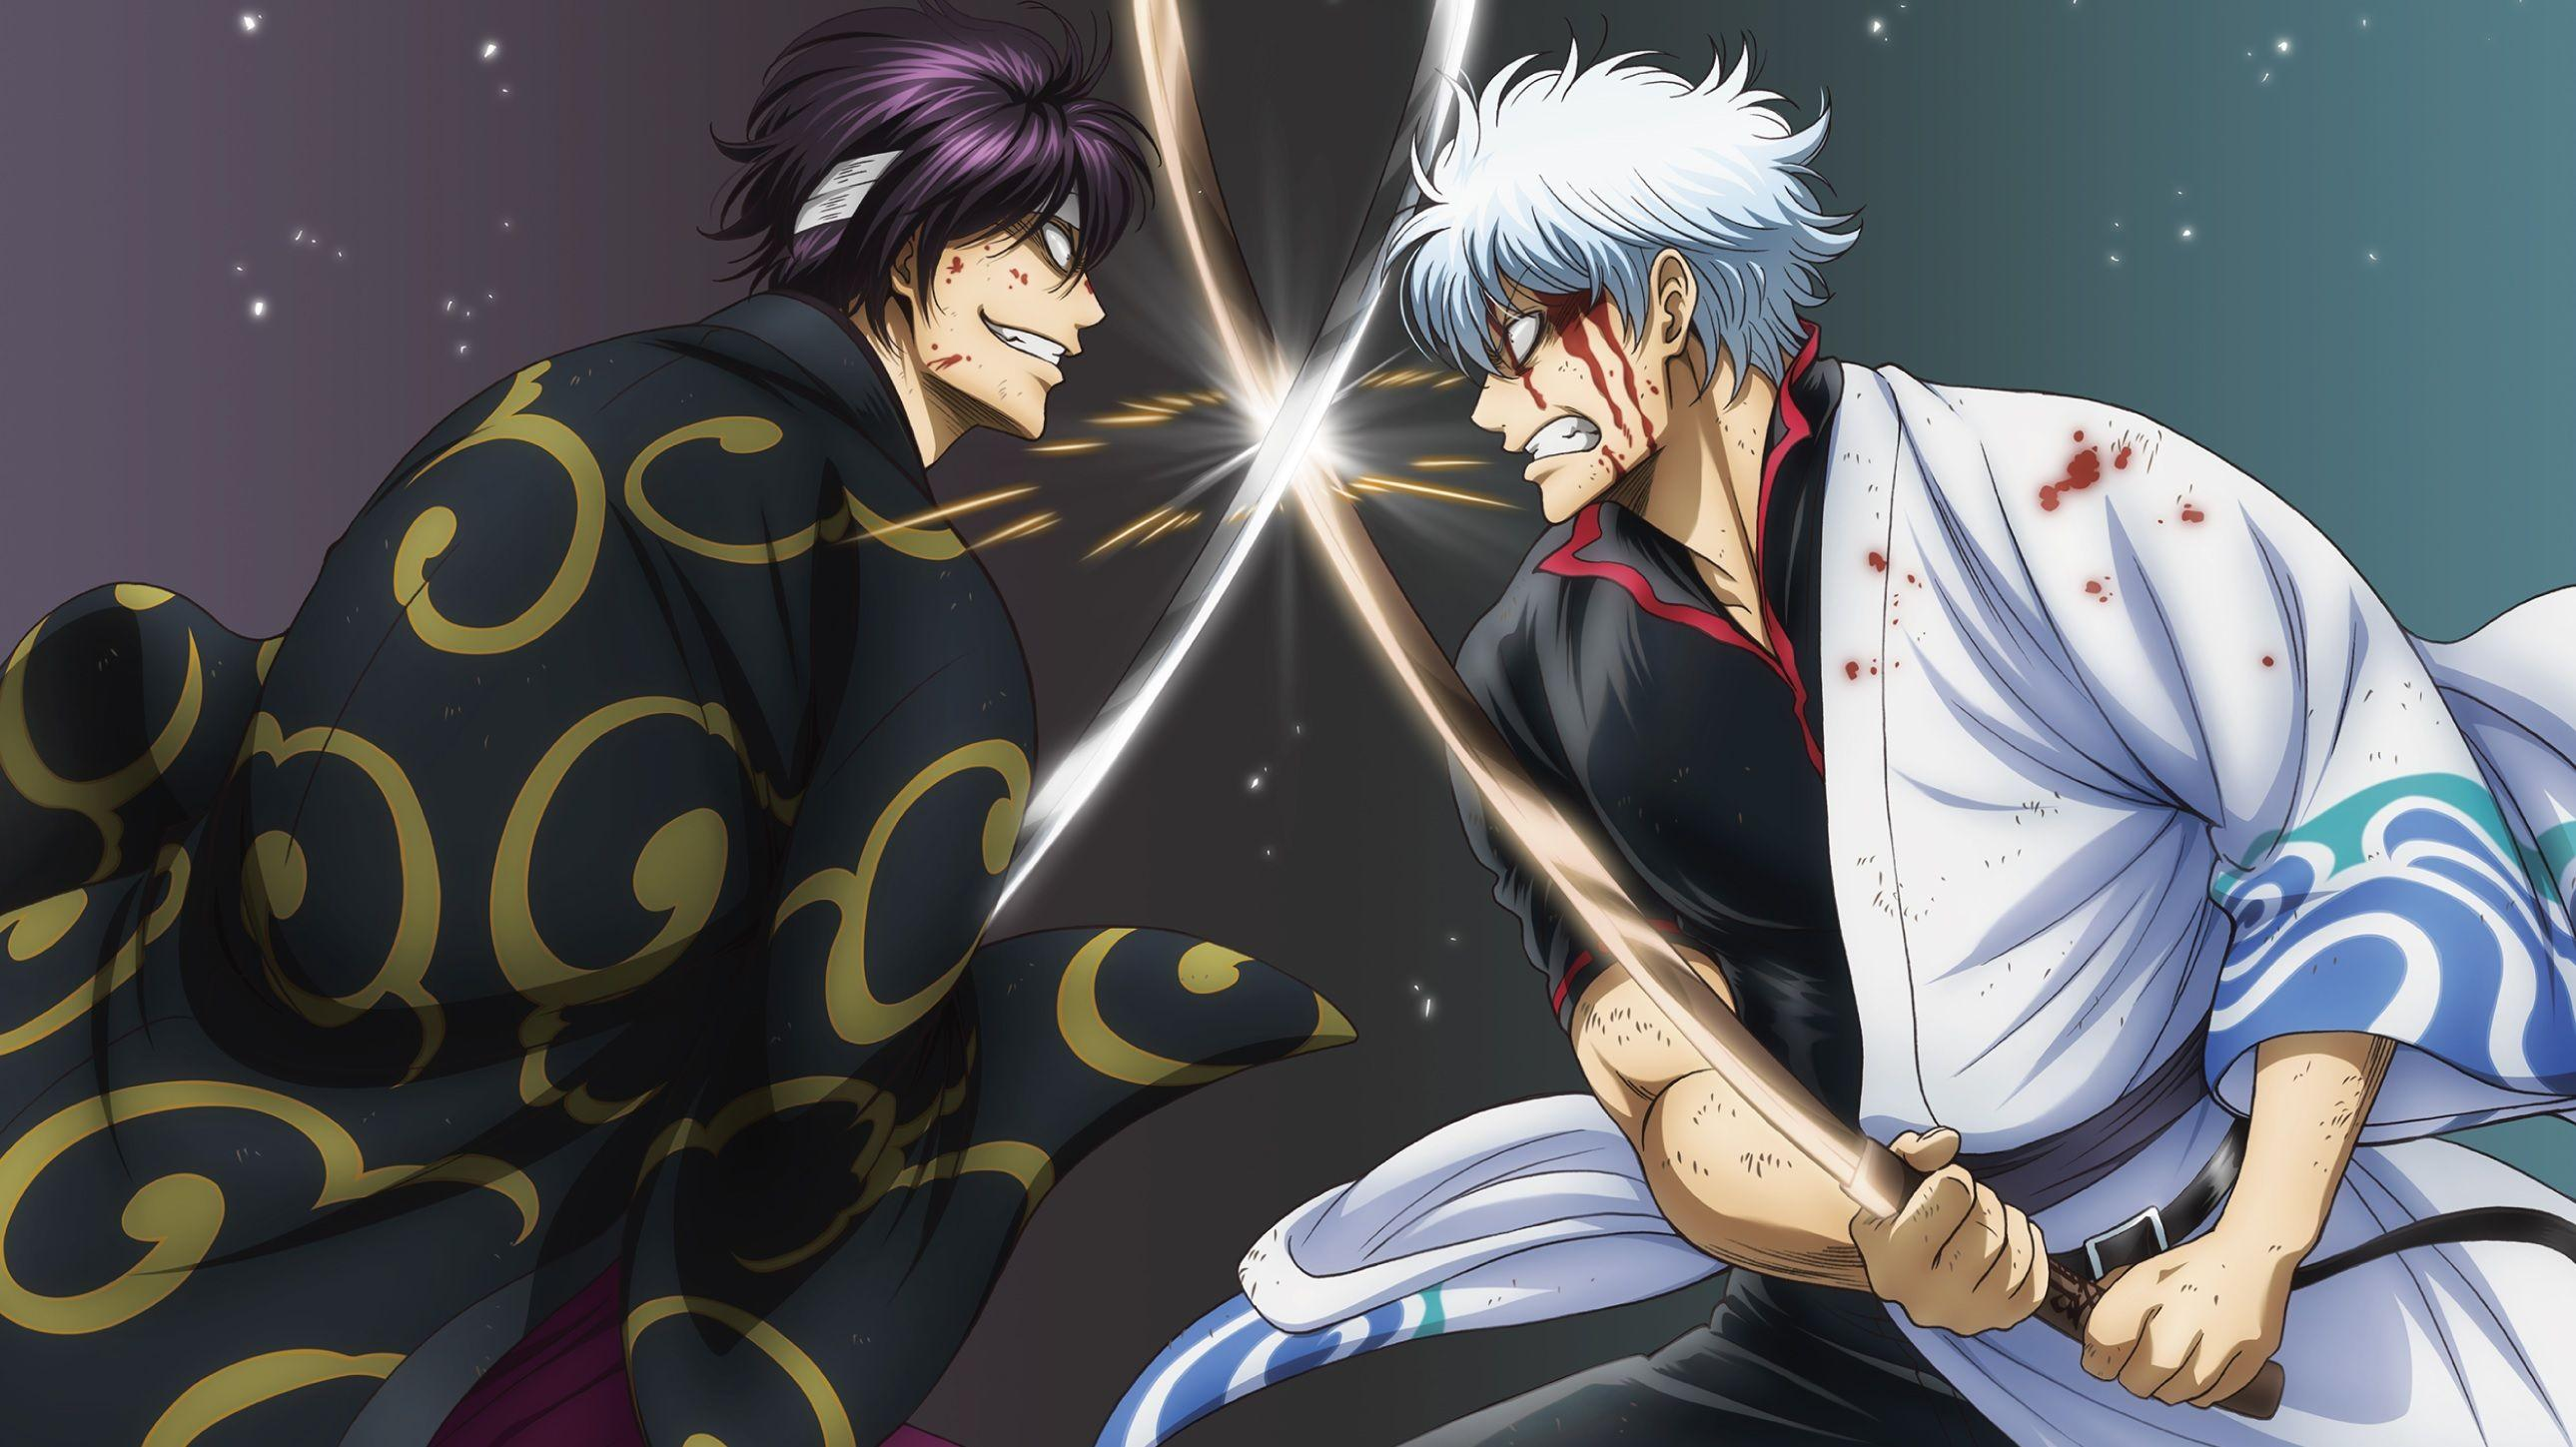 Shogun Assasin Arc Ultra resolution wallpapers : Gintama